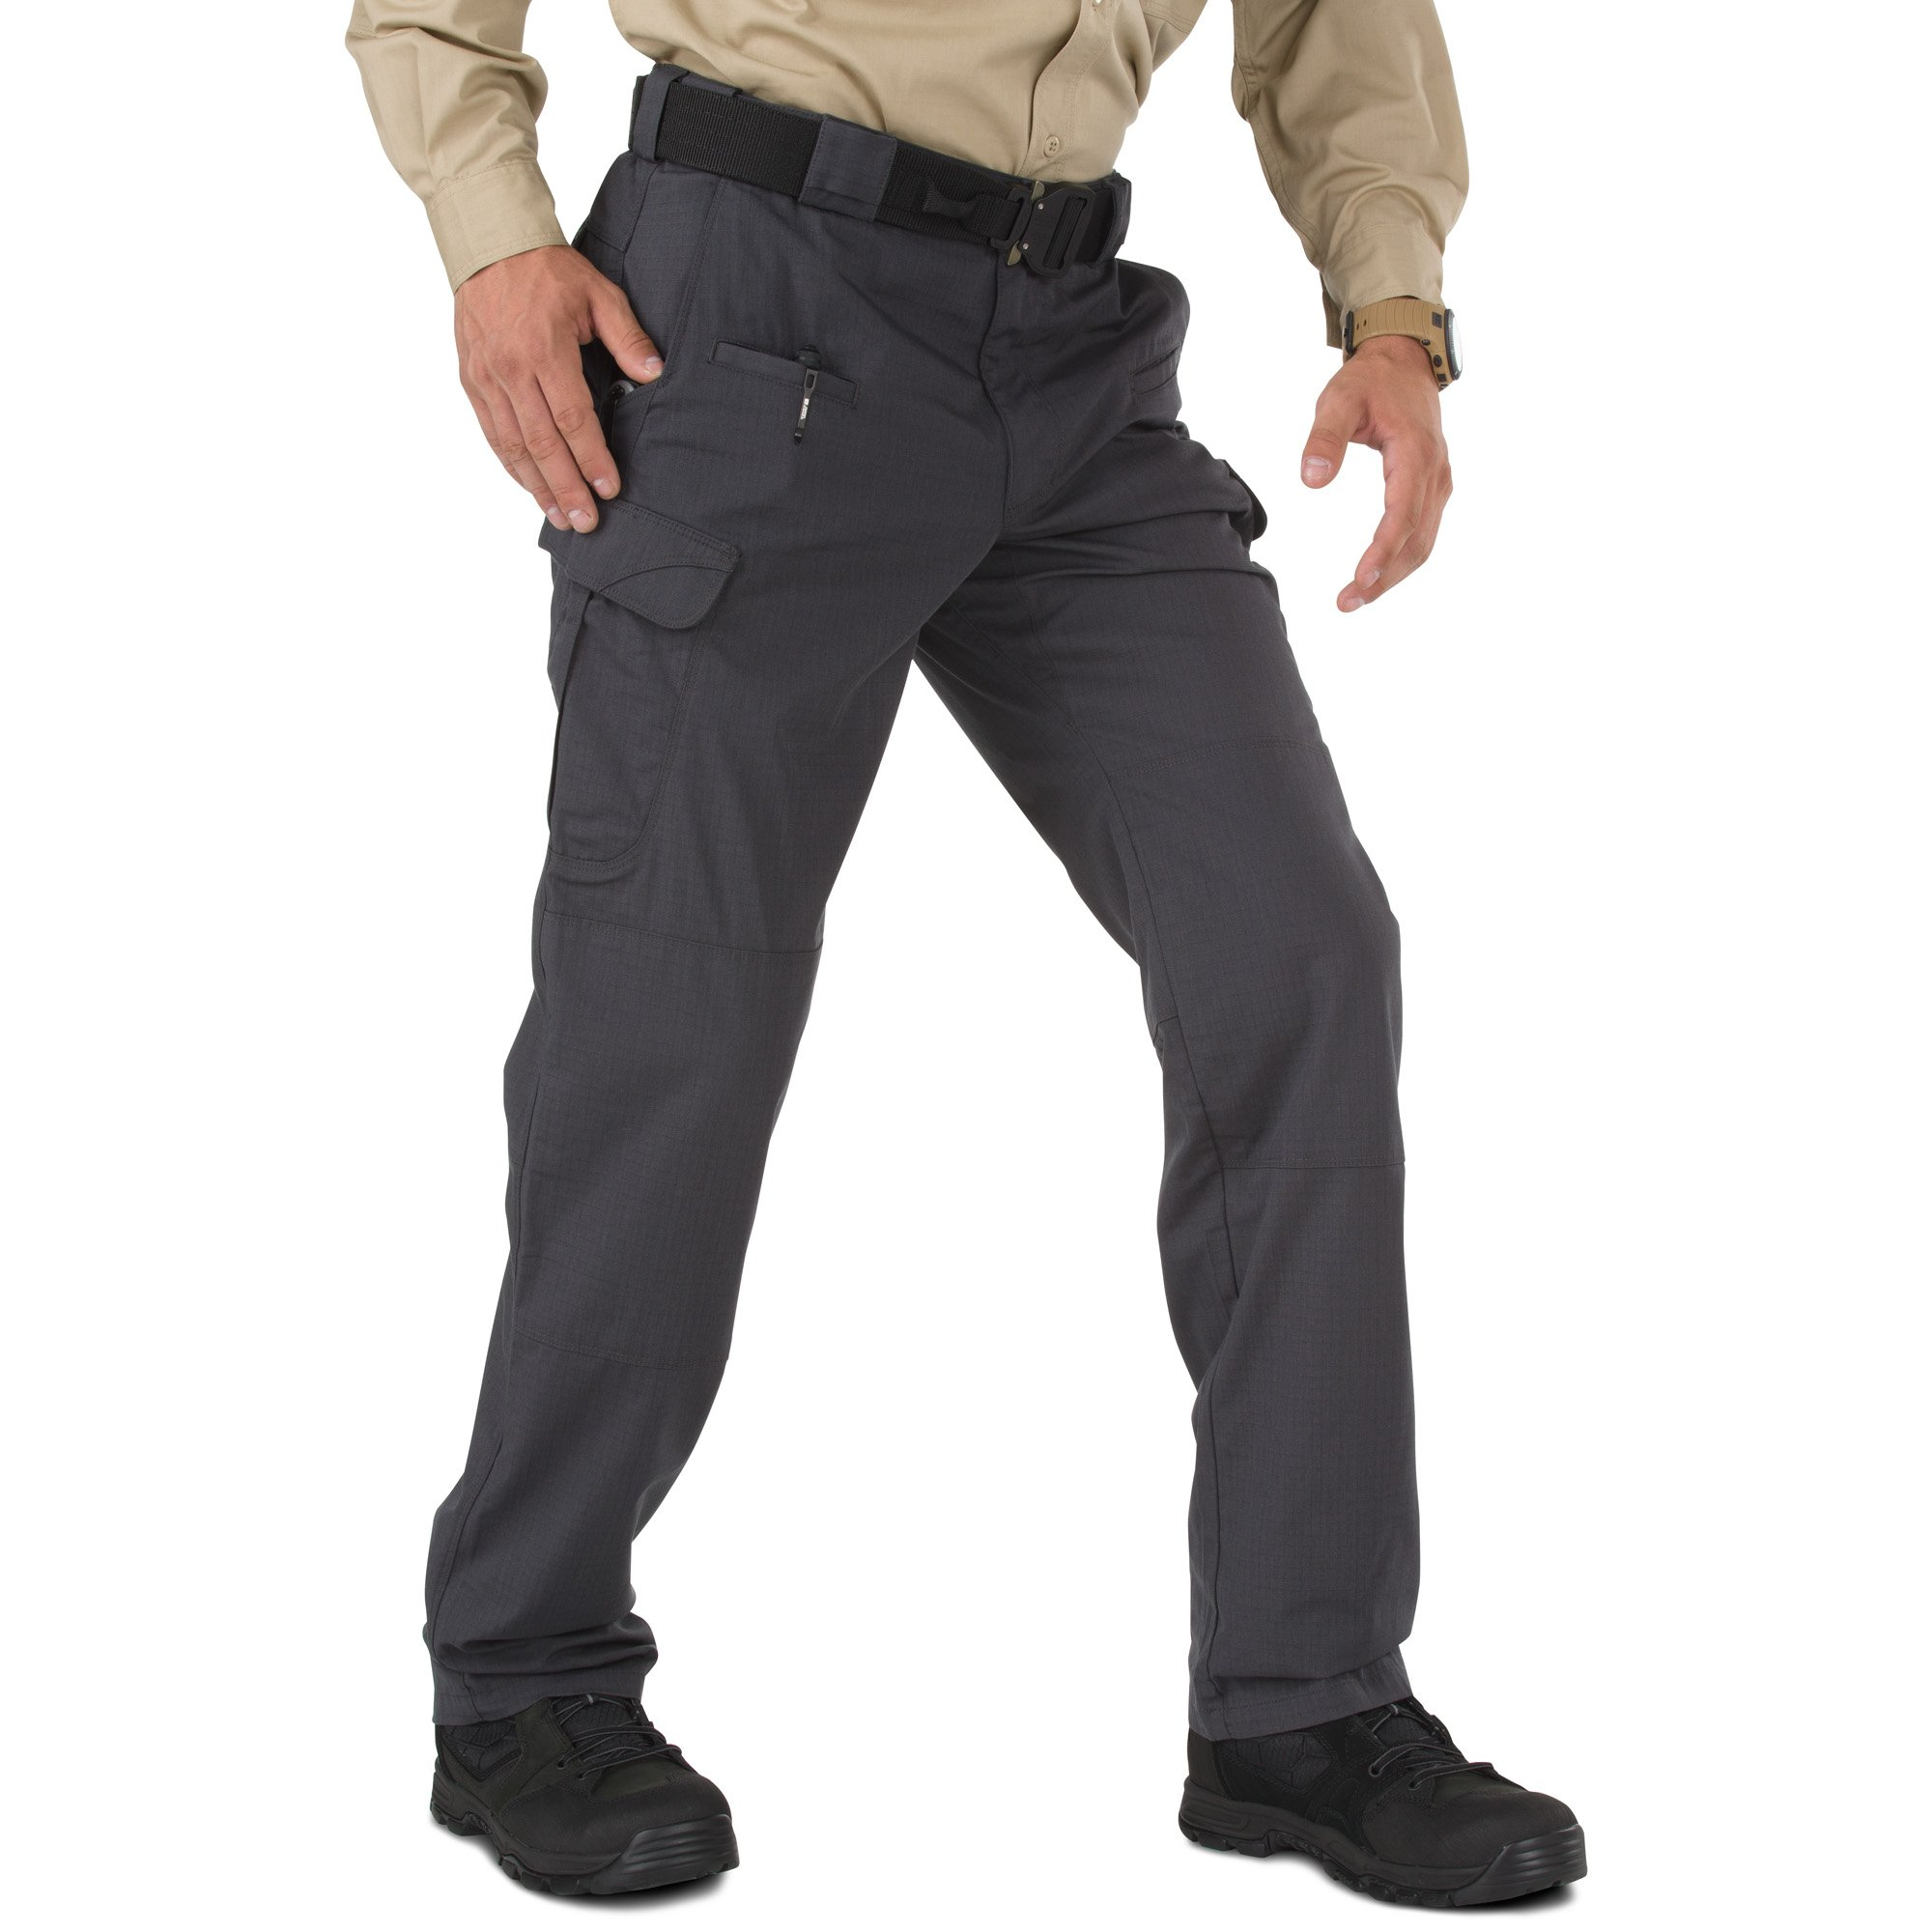 5.11 Tactical Stryke Pant, Charcoal, 36x32